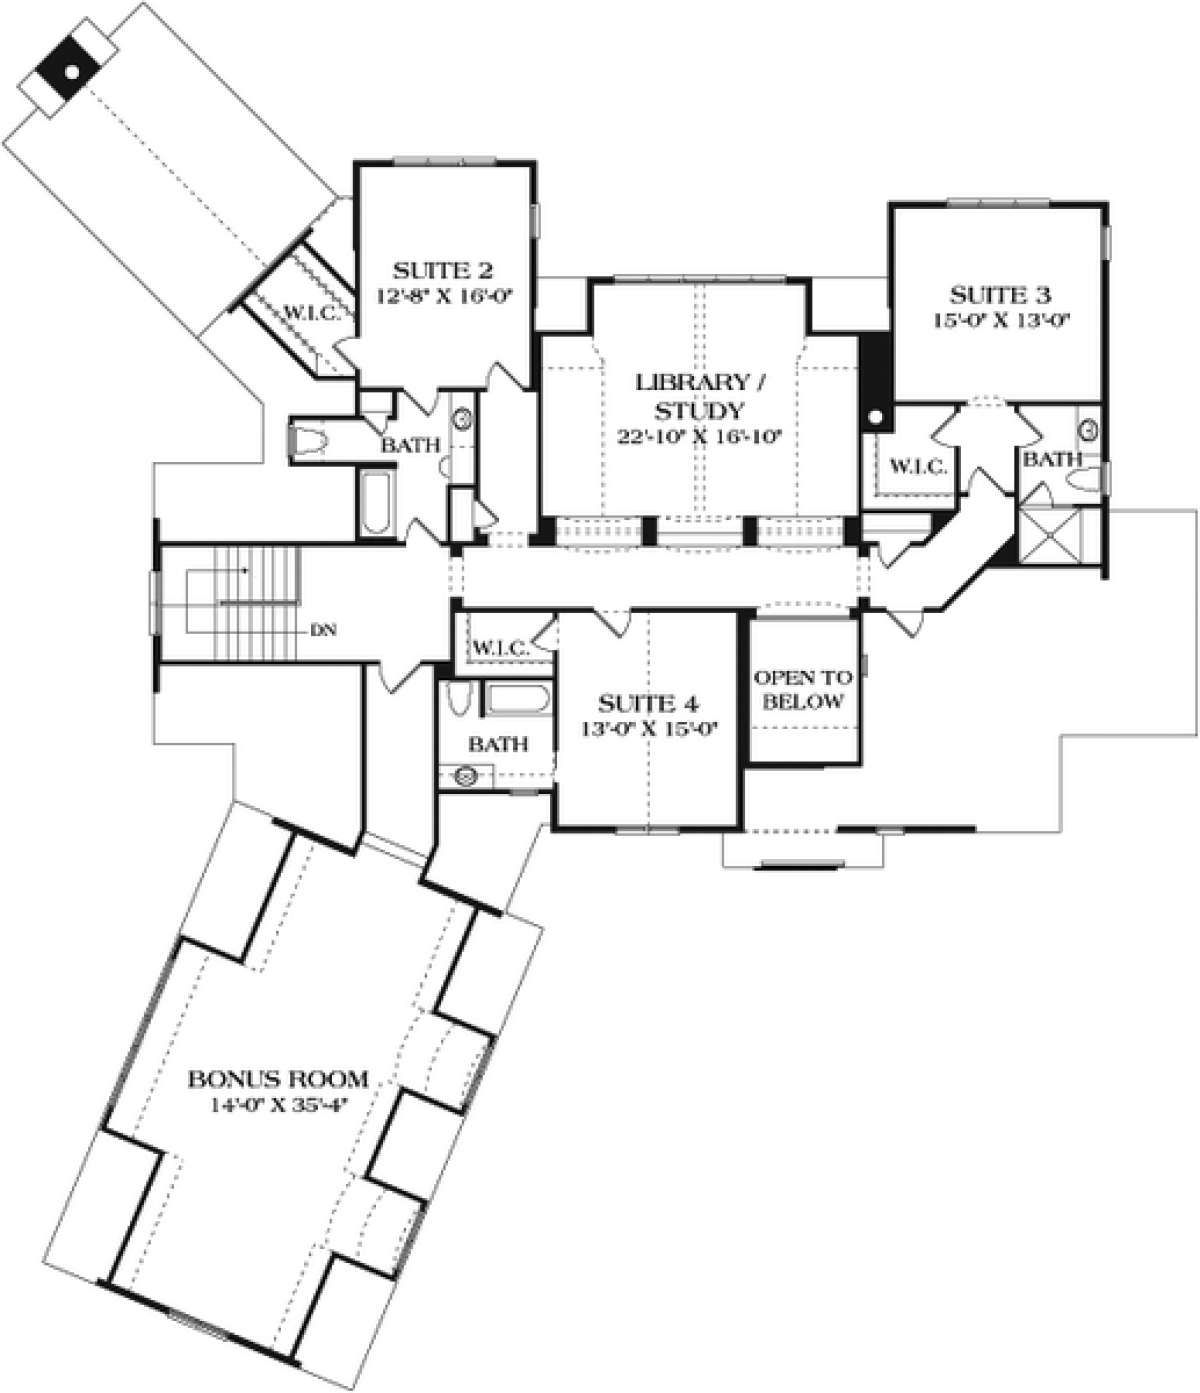 House Plan 3323 00638 European Plan 4 816 Square Feet 4 Bedrooms 5 Bathrooms House Plans New House Plans French Country House Plans